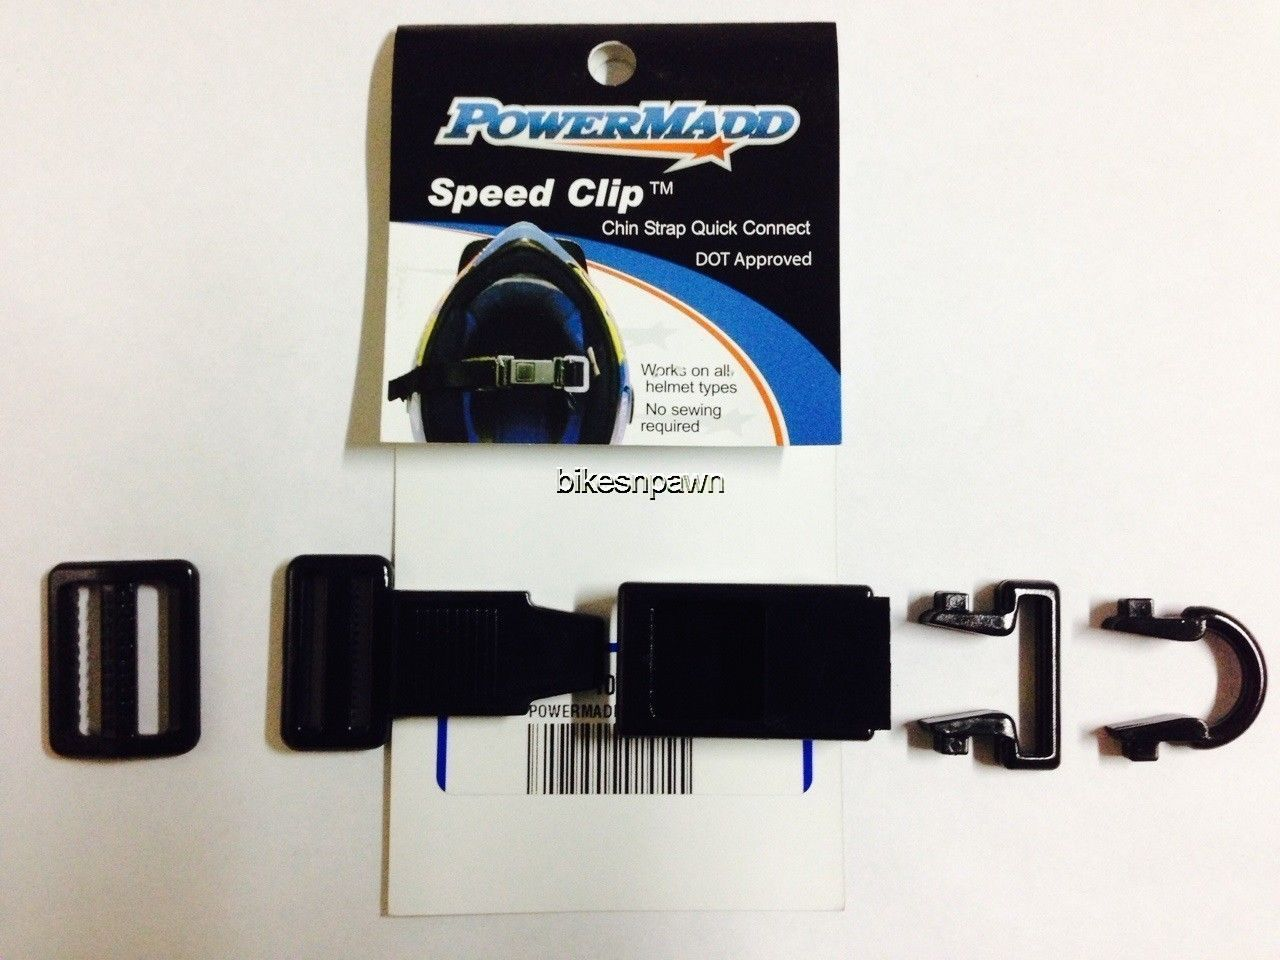 New 2 Pack Powermadd Speed Clip Quick Buckle Helmet Strap Connect Kits